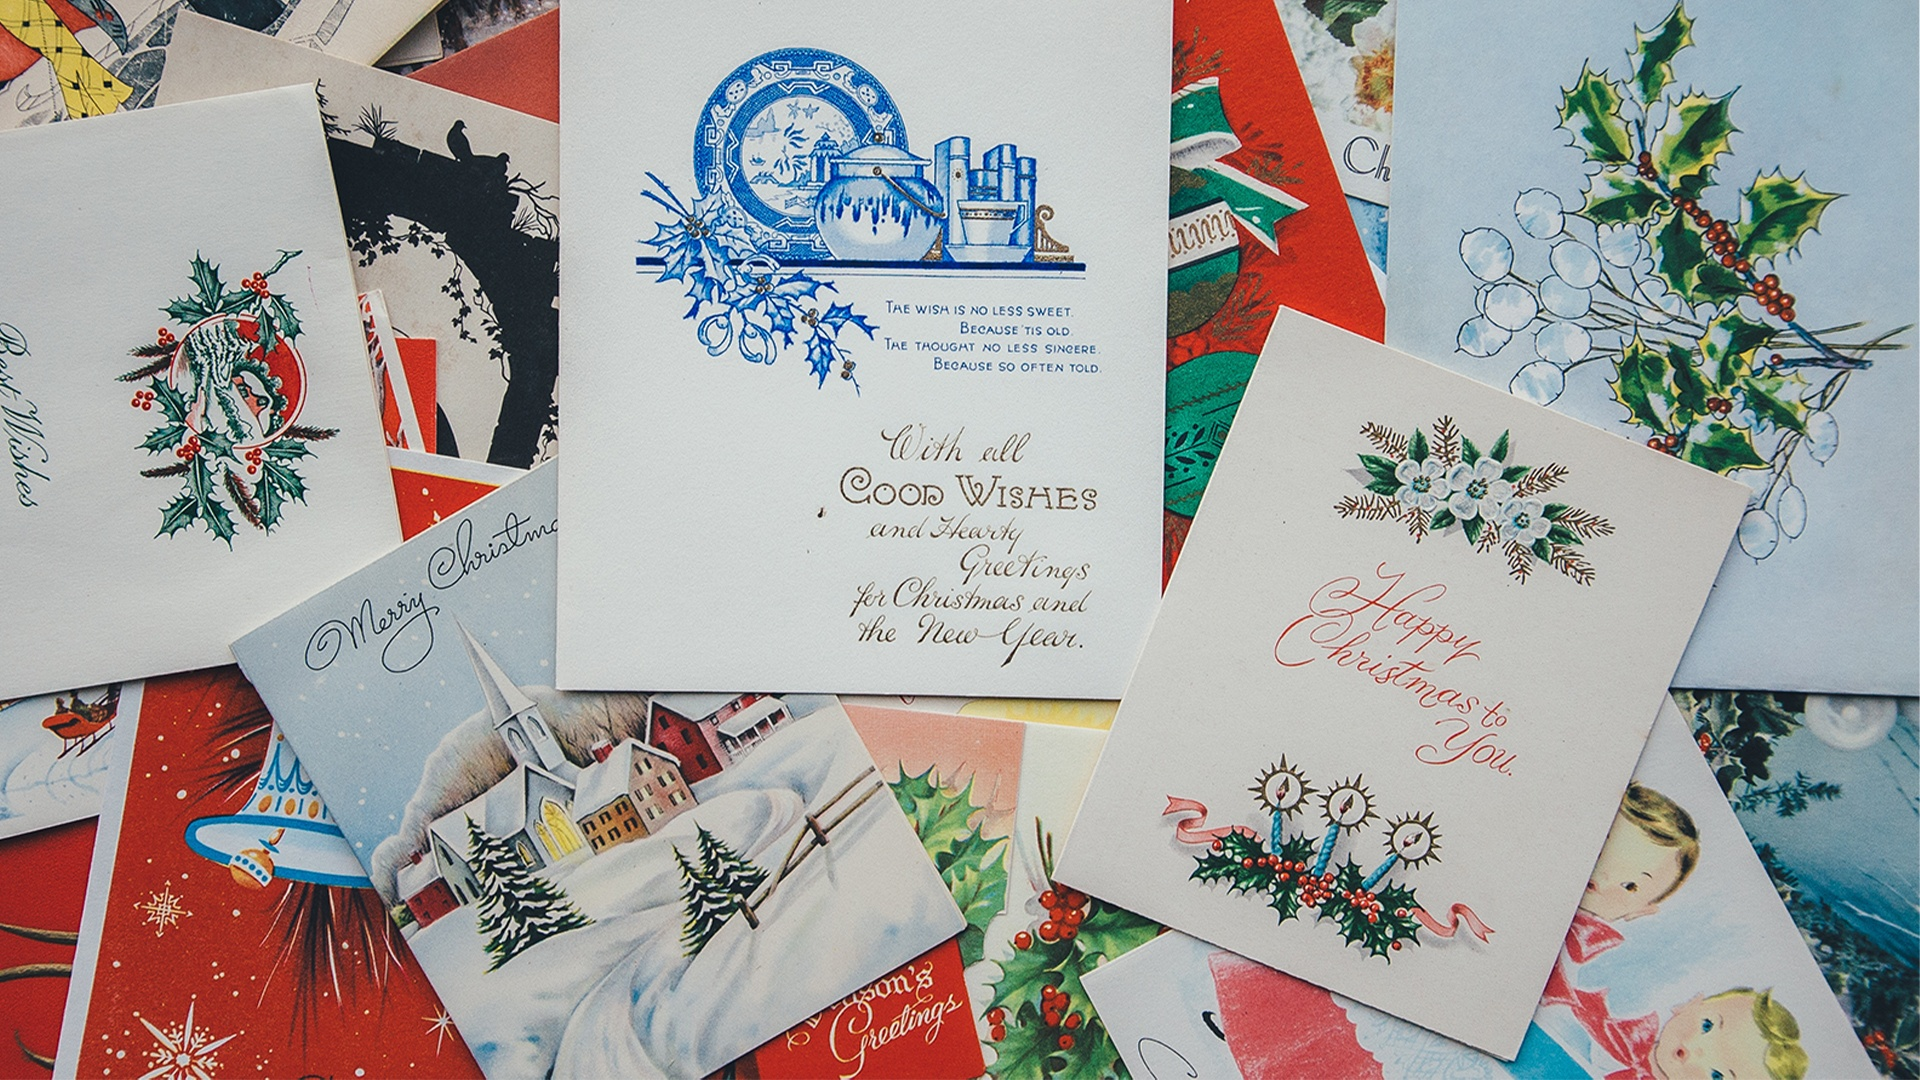 OUTSHINERY-HolidayCards.jpg